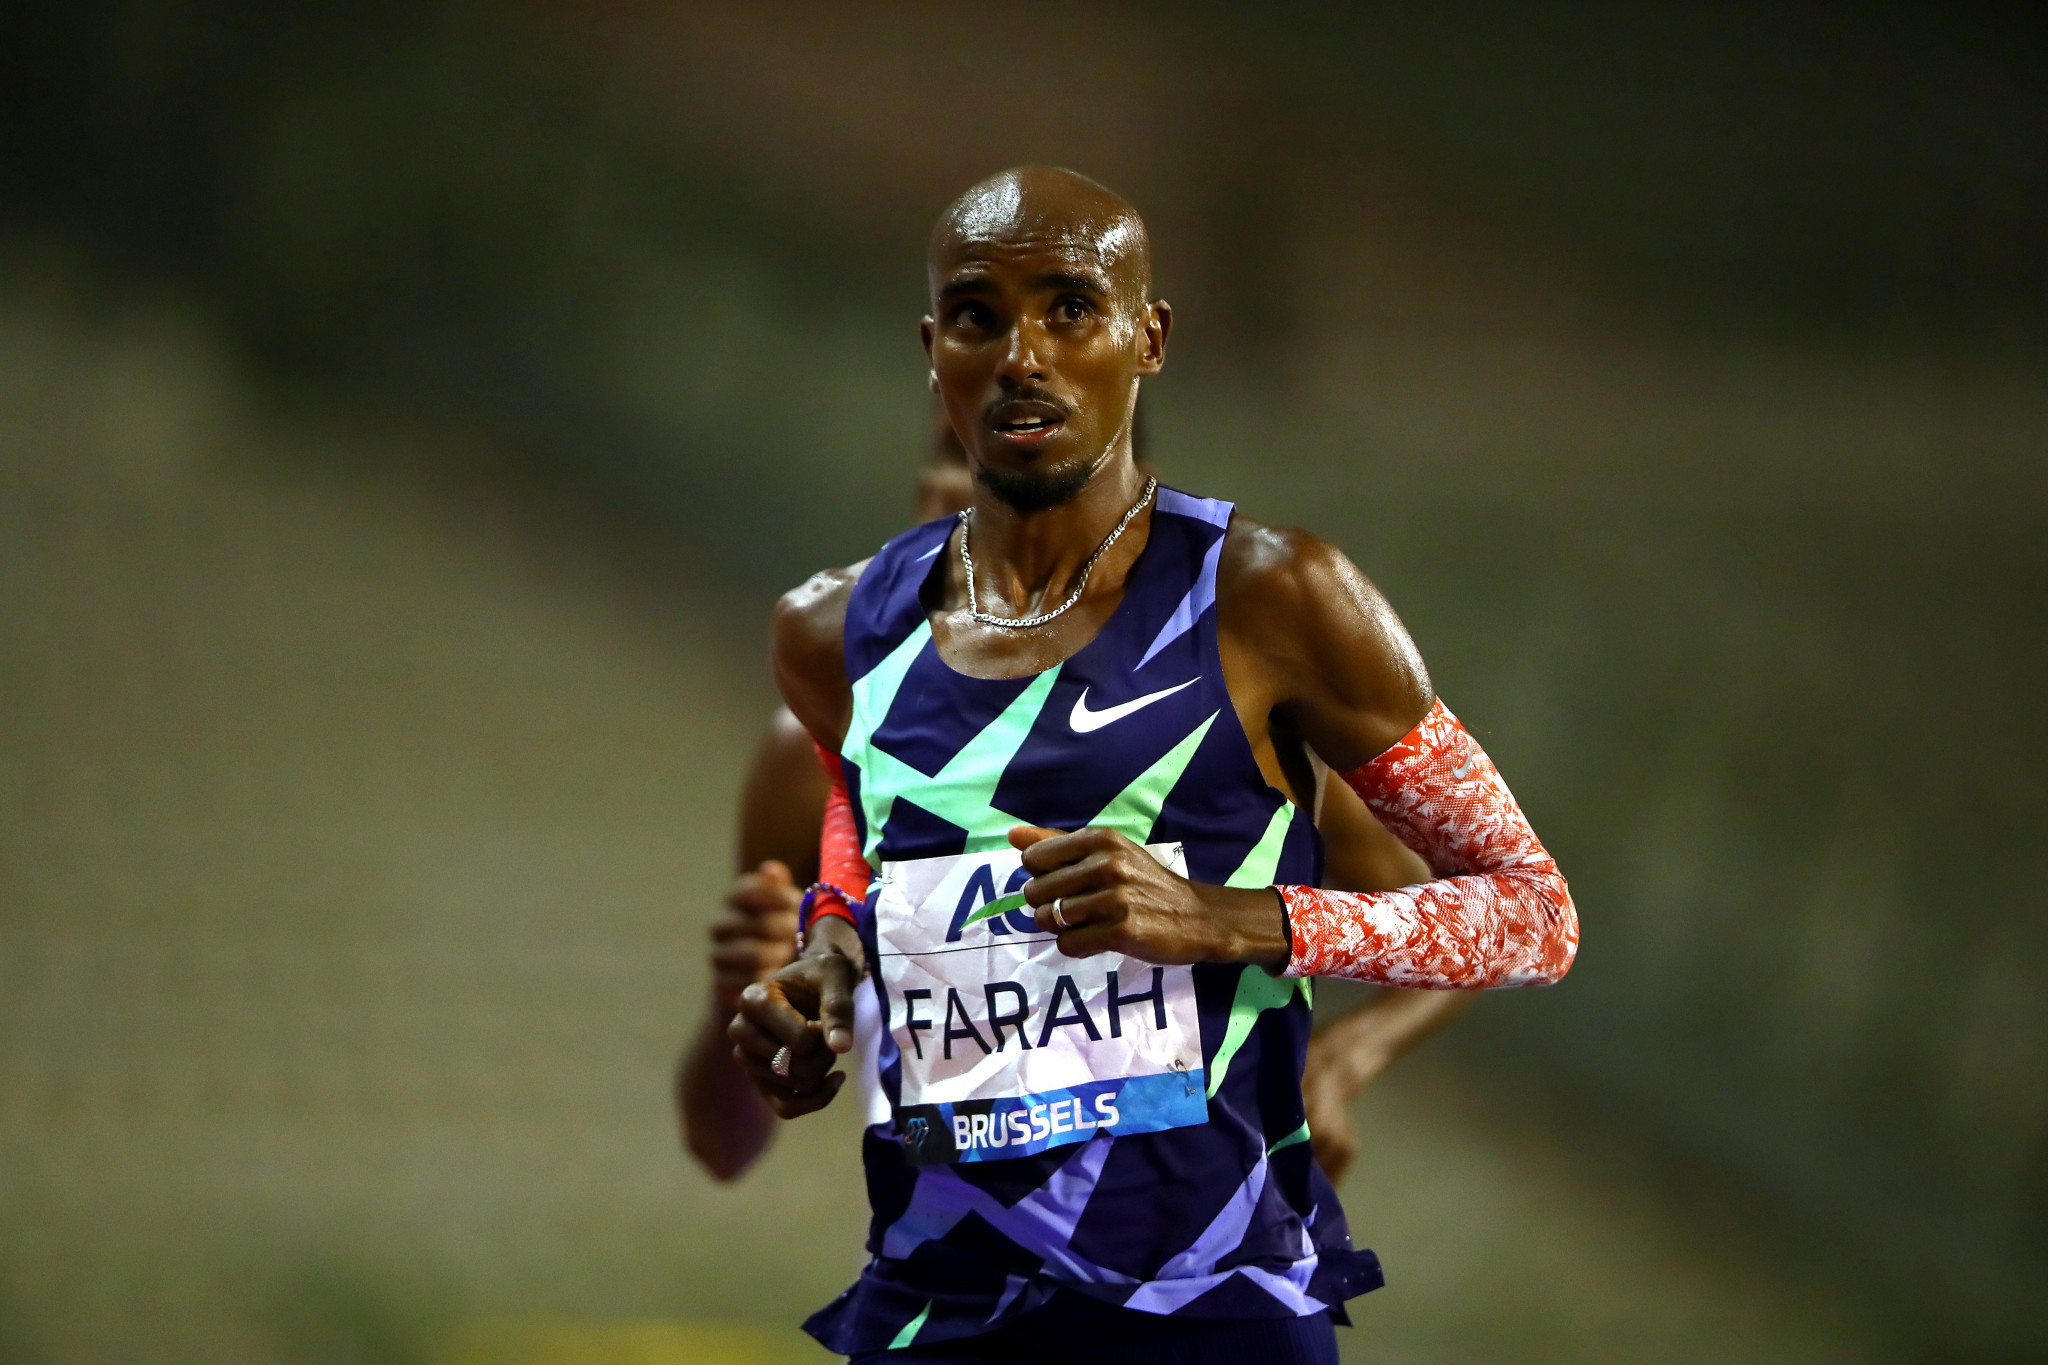 Sir Mo to skip 5,000m in pursuit of 10,000m glory at Tokyo 2020